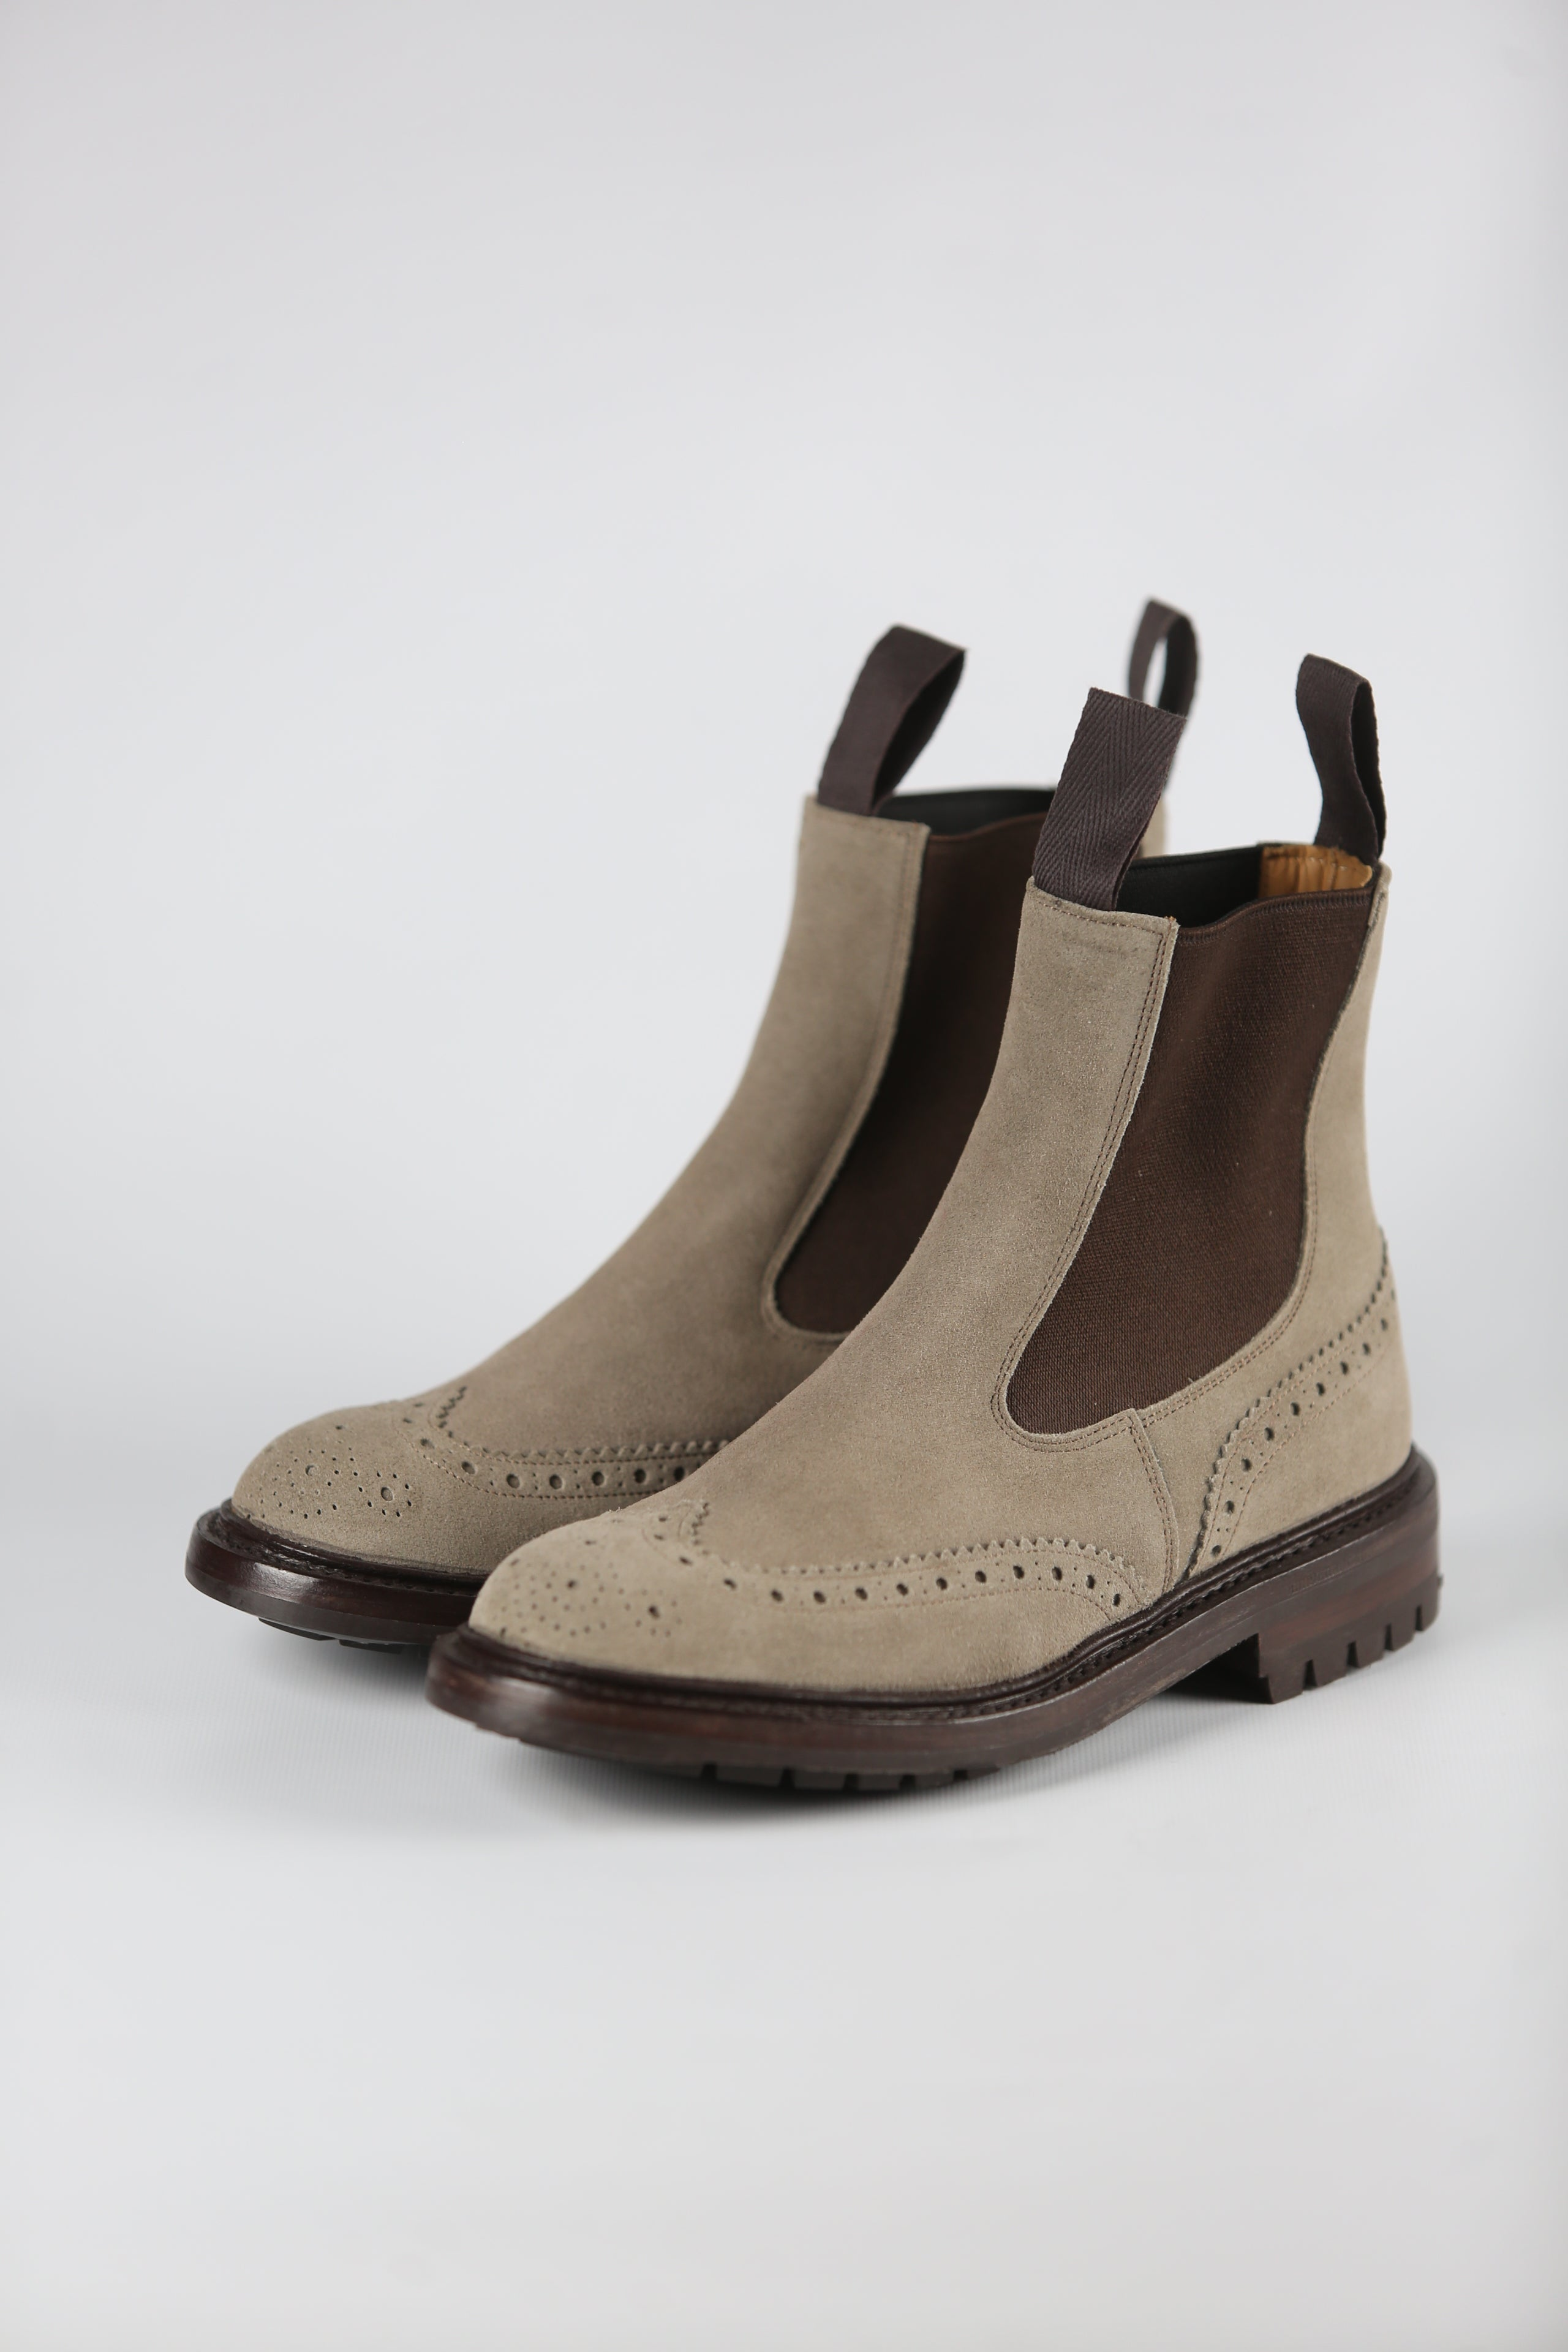 TRICKER'S - SILVIA SUEDE TR15/02/132 - SHALE